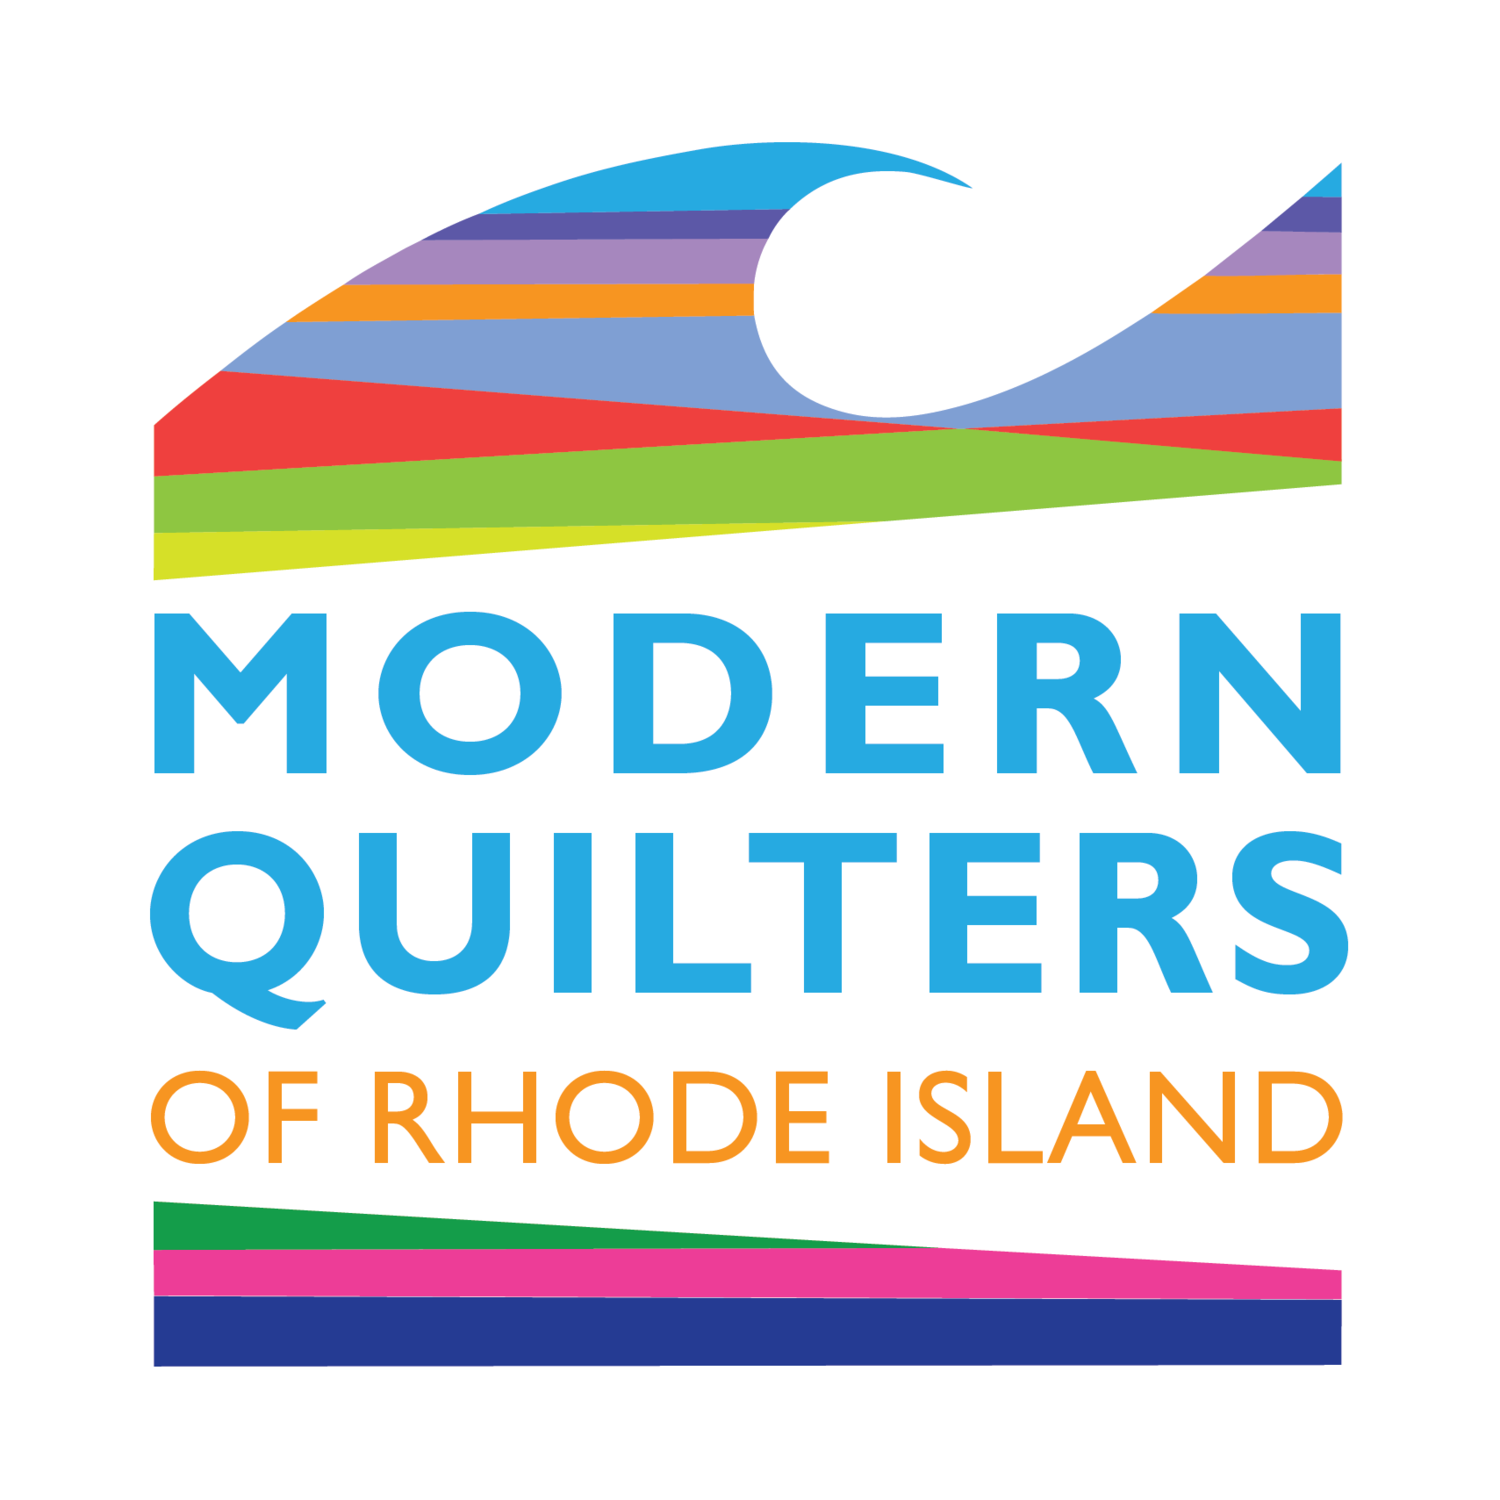 Modern Quilters of Rhode Island